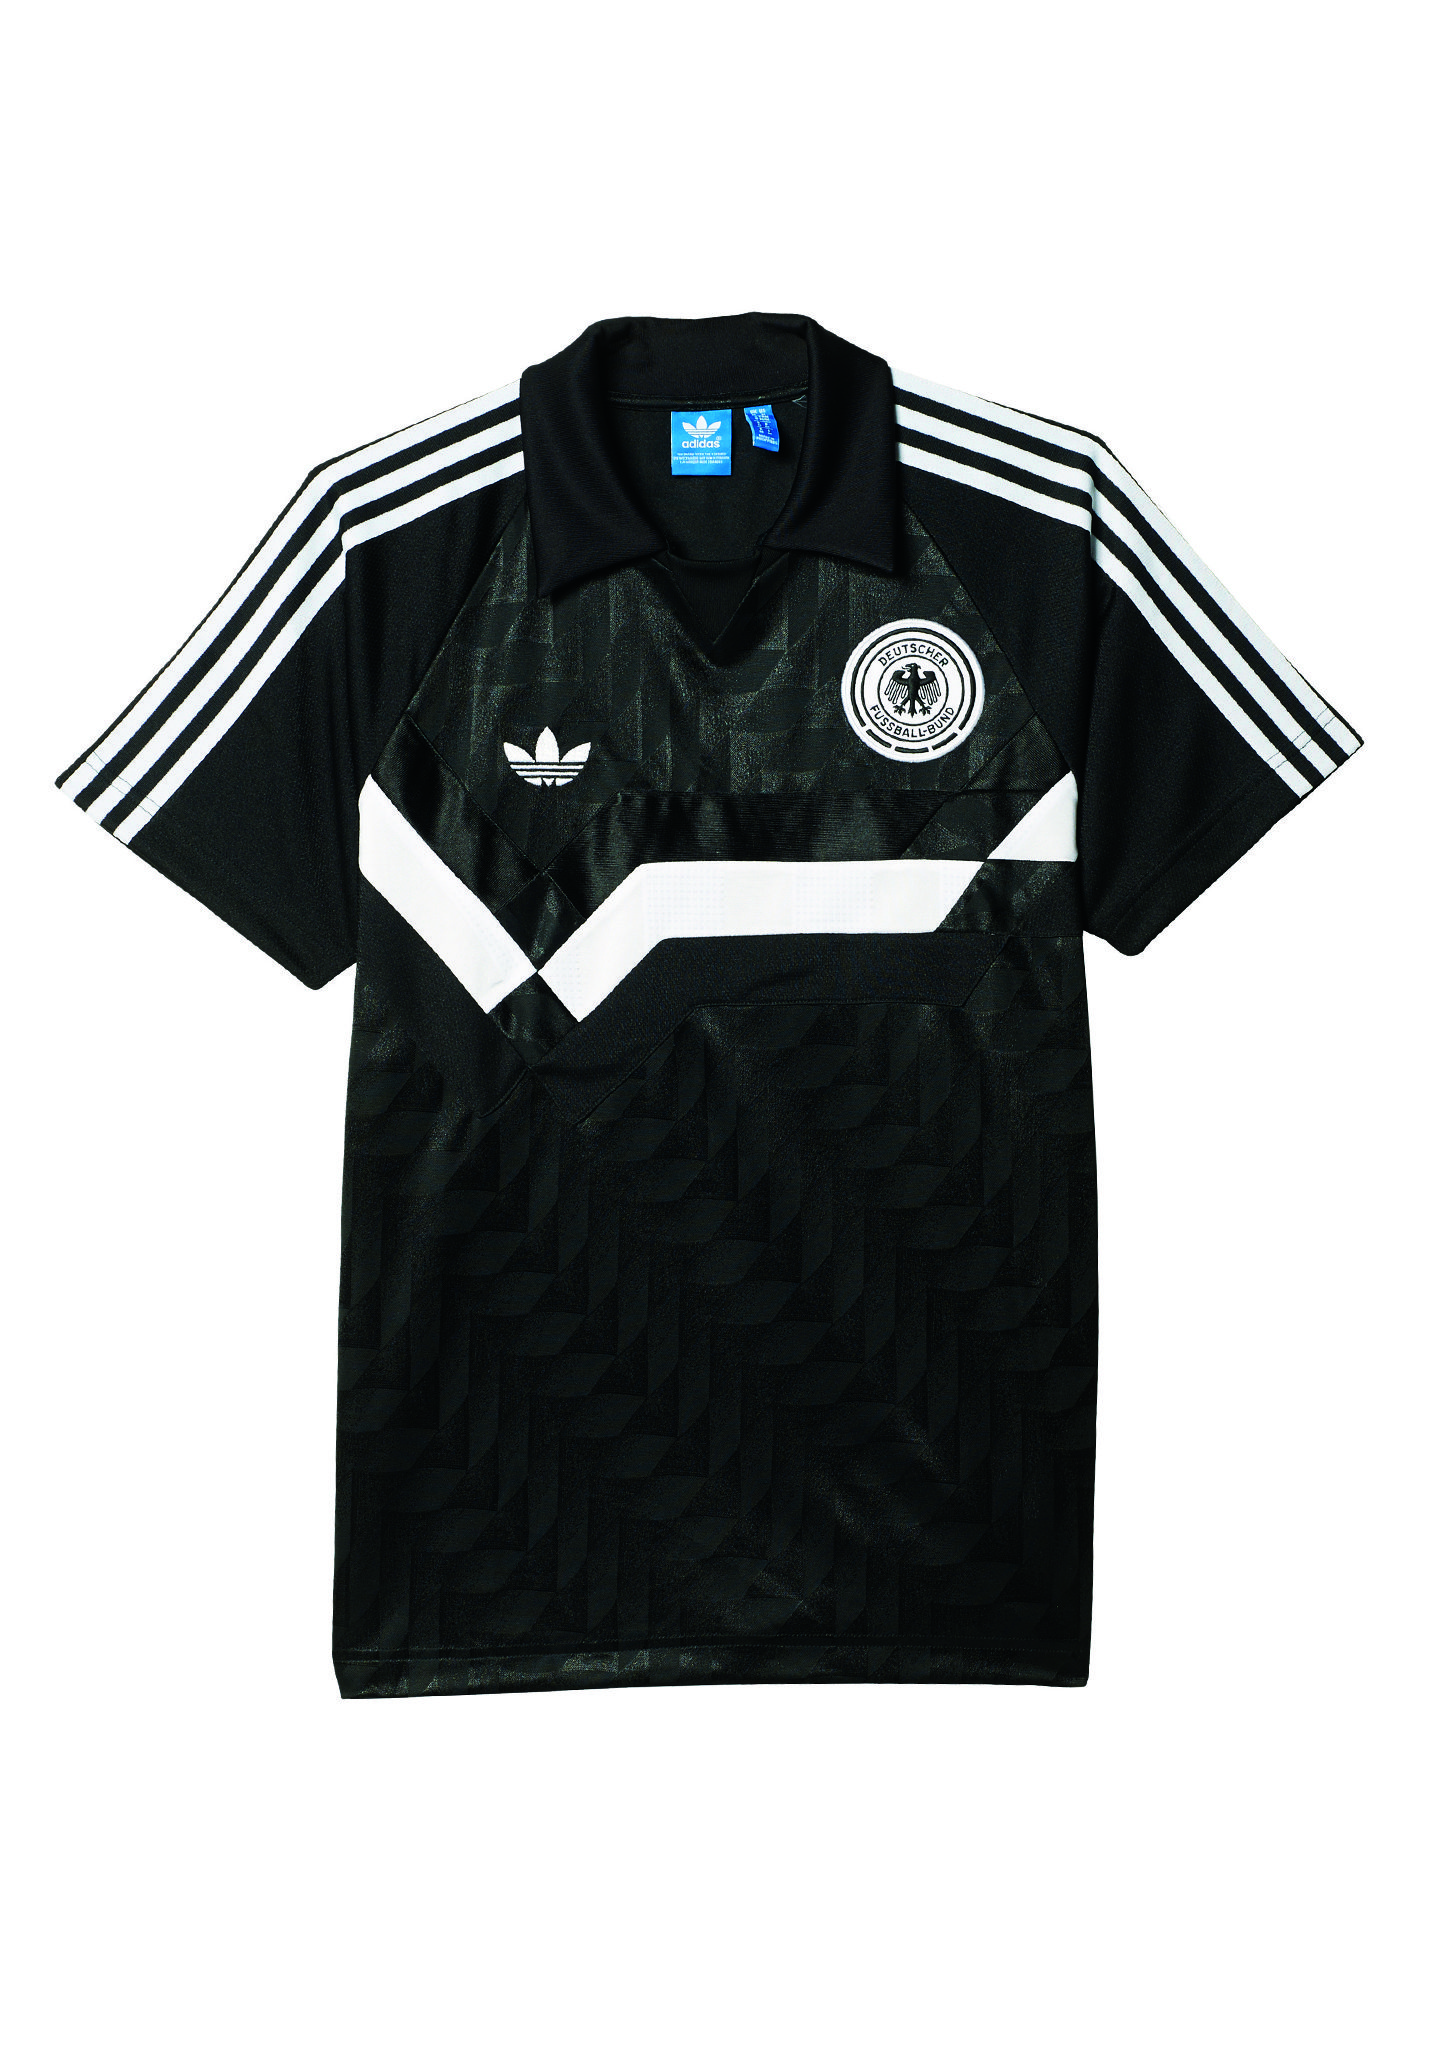 germany adidas